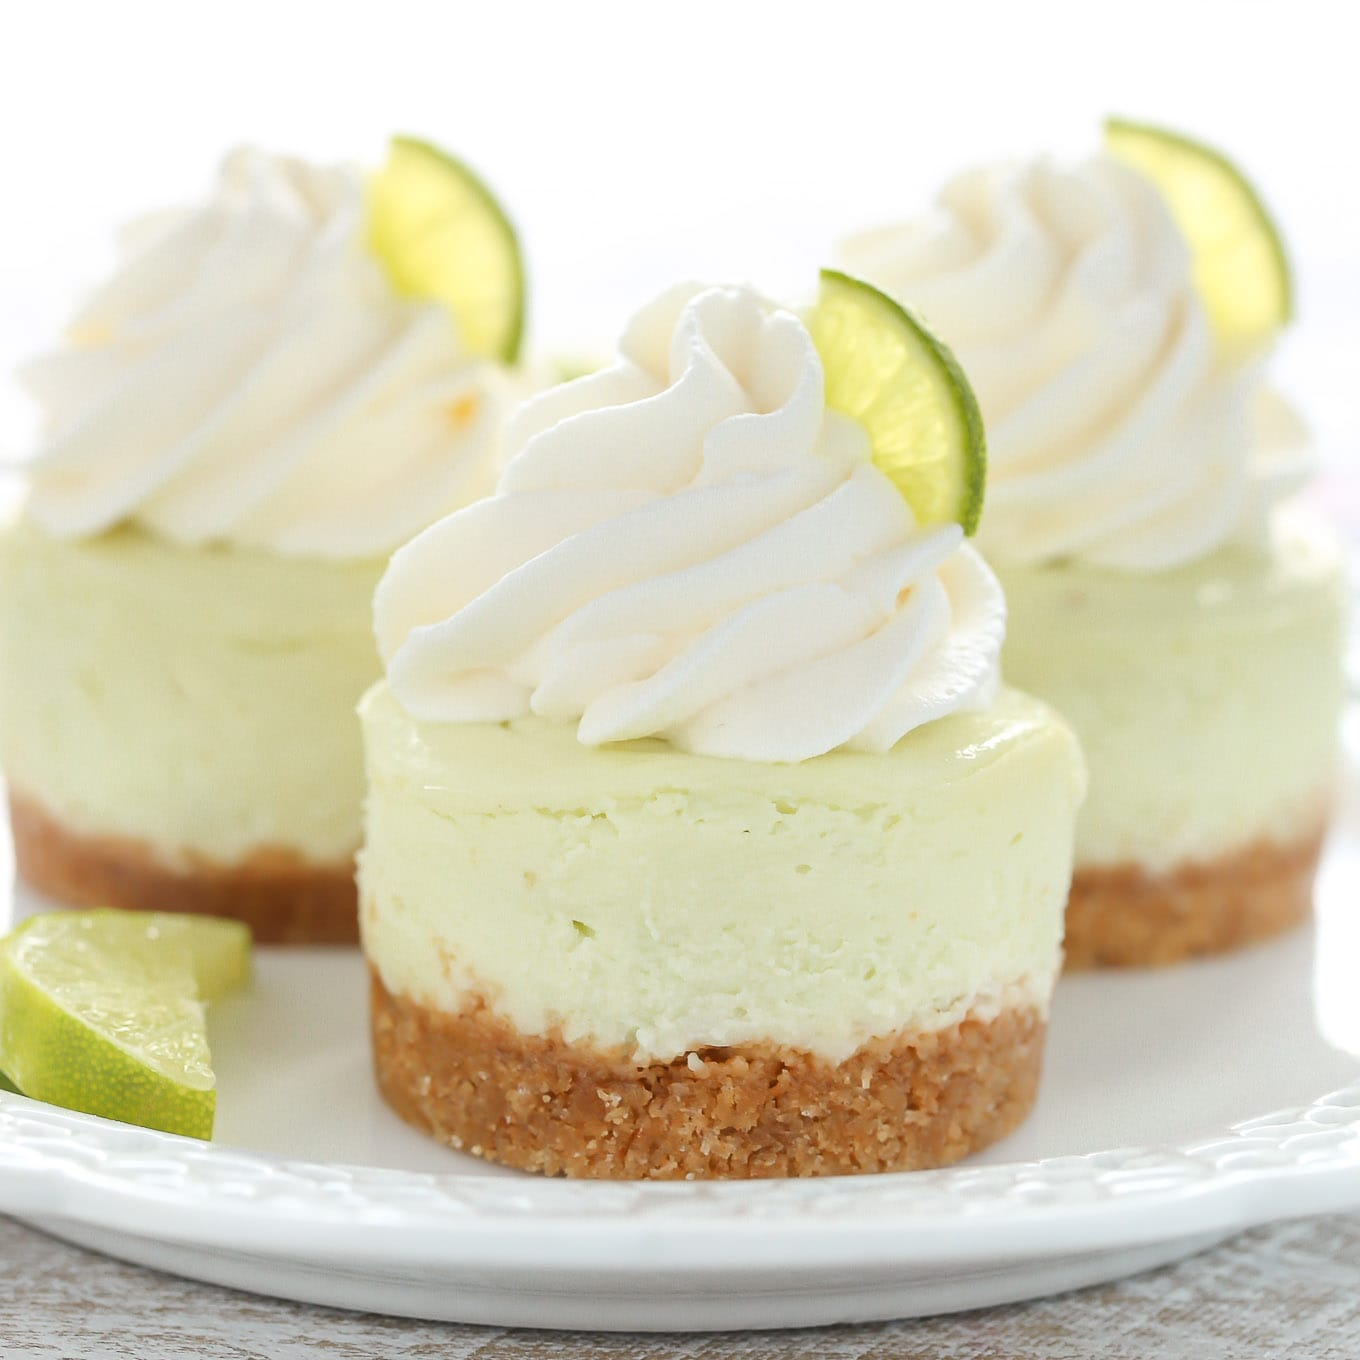 Image result for key lime cheesecake picture